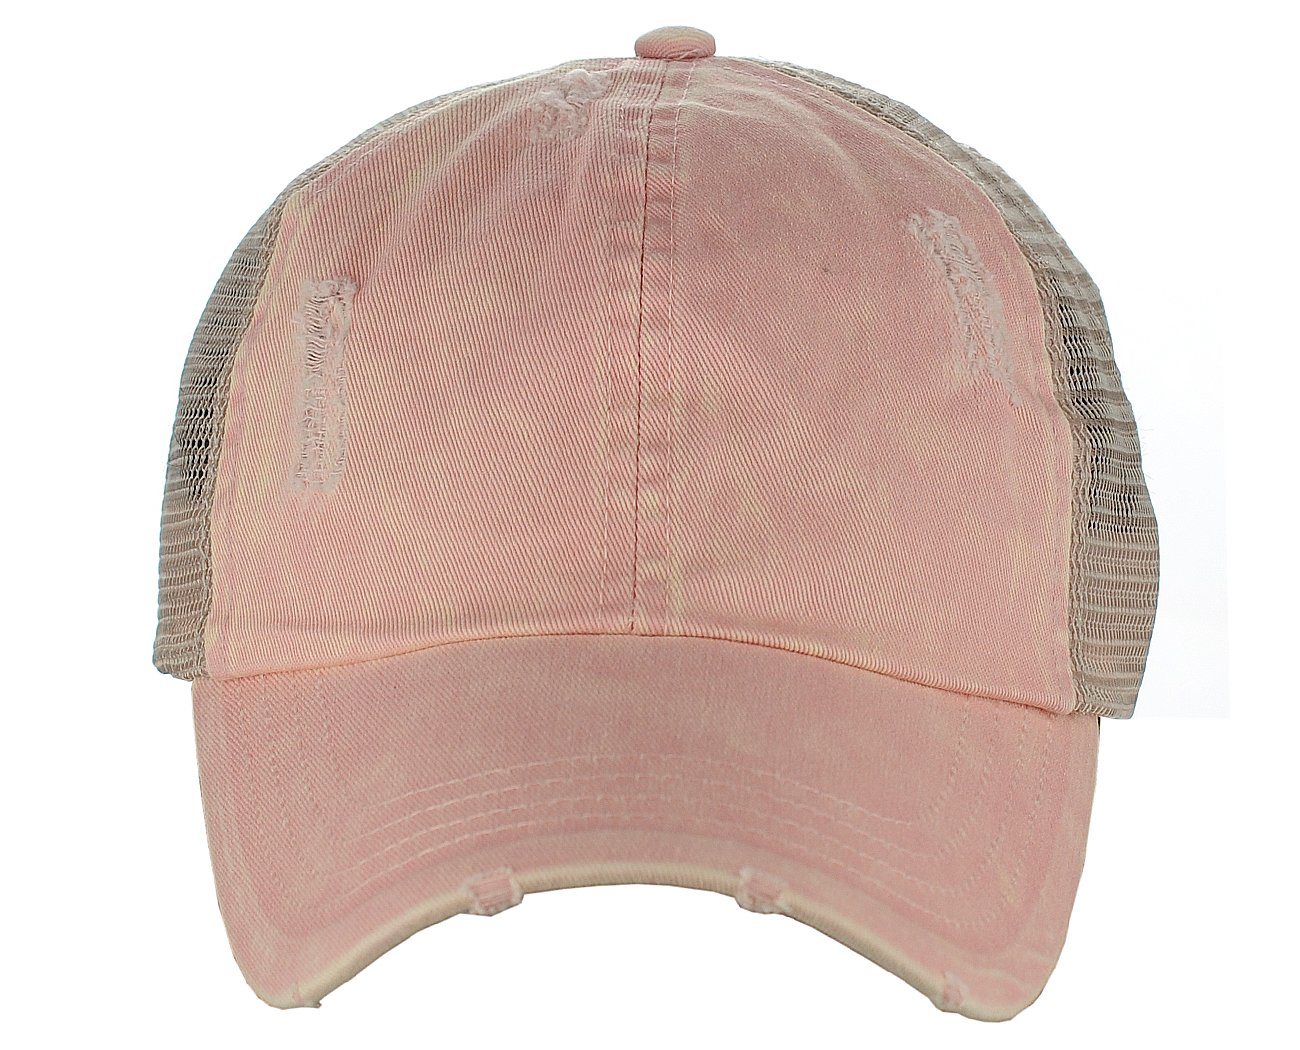 D&Y Ponyflo Ponytail Messy High Bun Distressed Adjustable Trucker Baseball Cap, Dusty Pink by D&Y (Image #4)